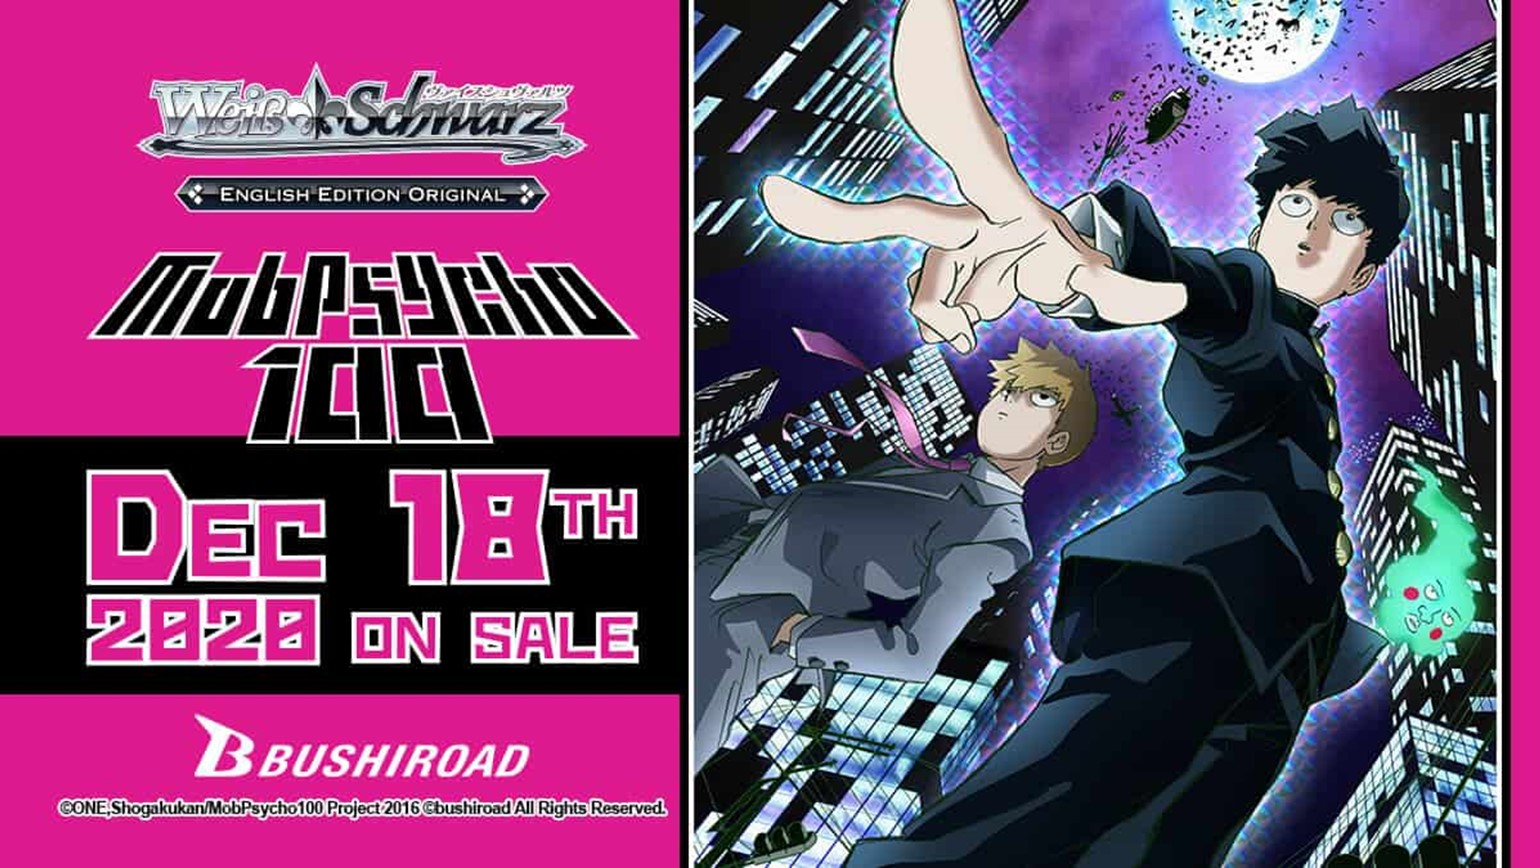 Weiss Schwarz: Mob Psycho 100 Hits Your FLGS Shelves December 18th!